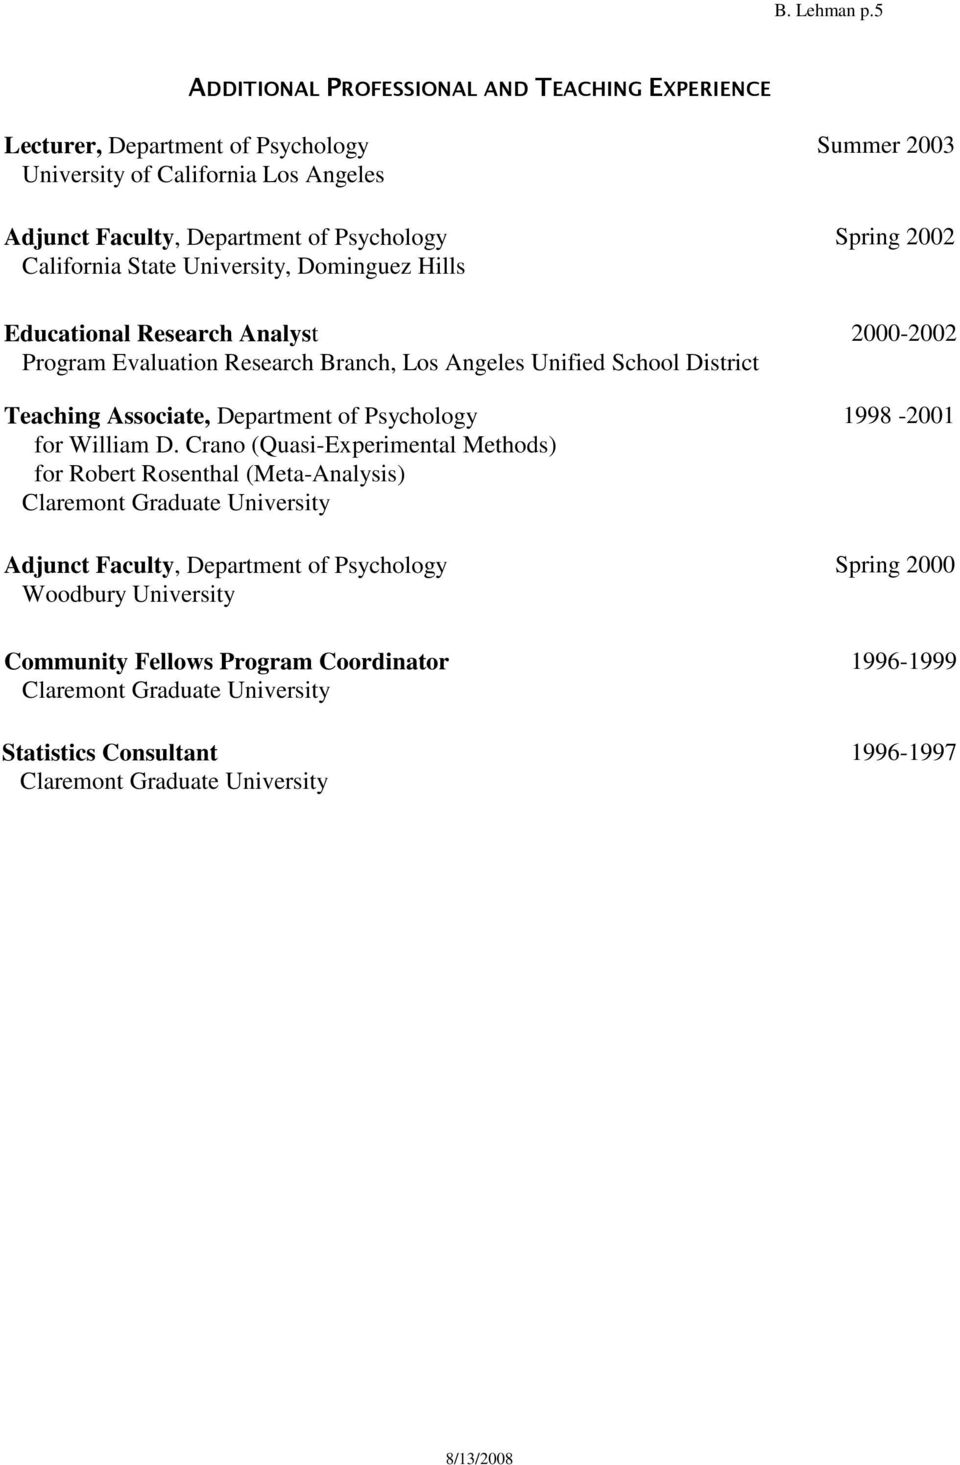 of Psychology Spring 2002 California State University, Dominguez Hills Educational Research Analyst 2000-2002 Program Evaluation Research Branch, Los Angeles